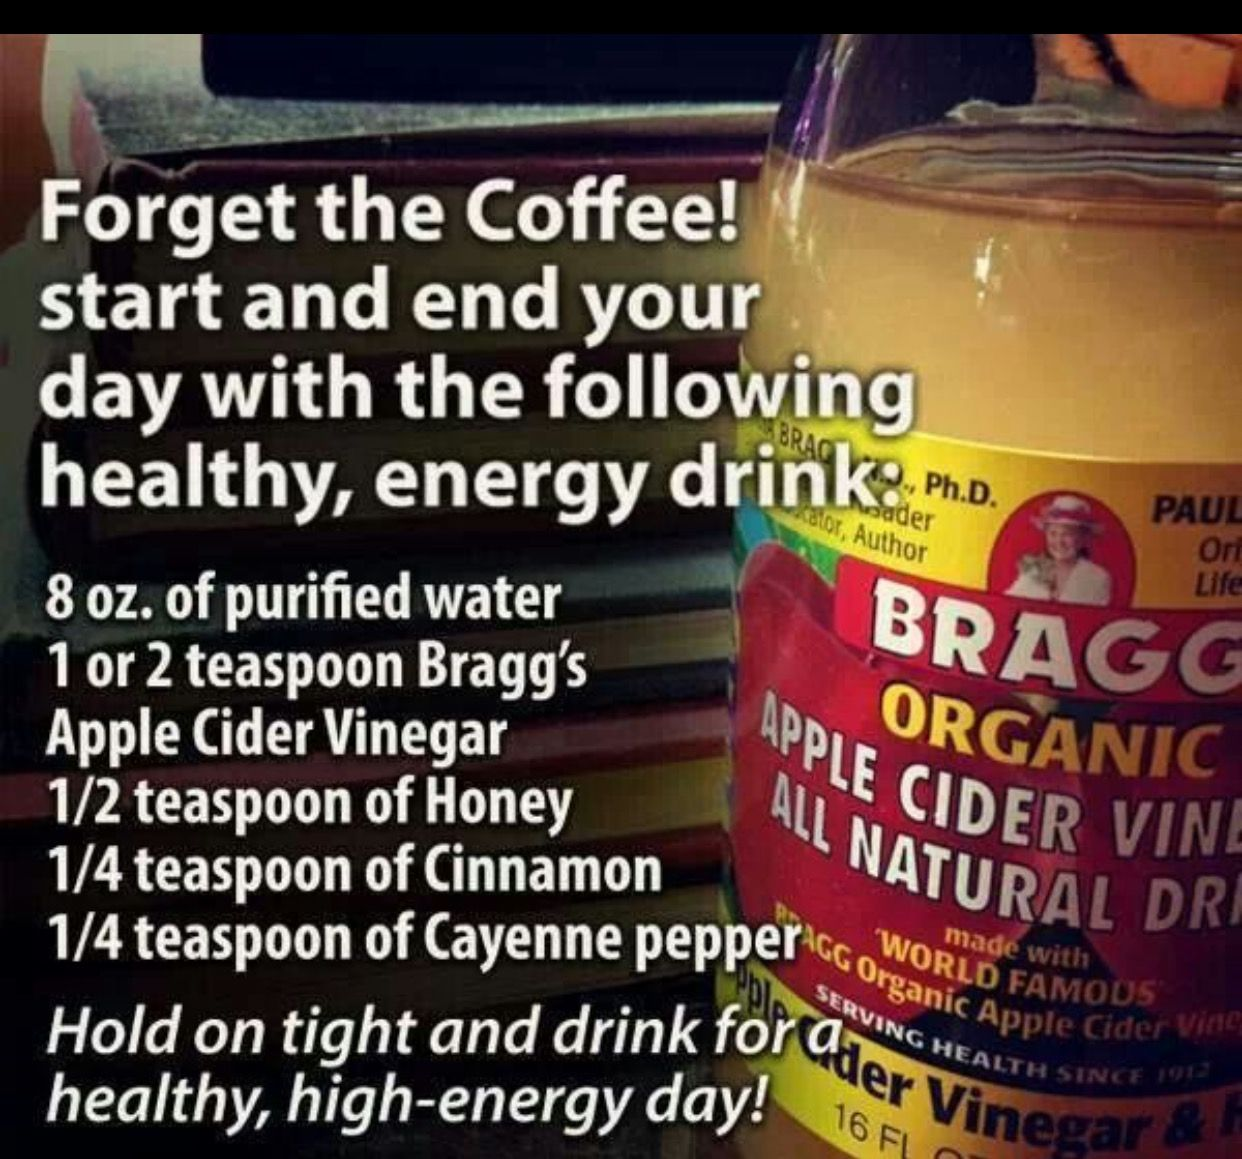 Old folk remedy: I was recommended to drink this concoction once a day by an older lady to lose weight and help with my arthritis. It's  cayenne, honey, lemon and apple cider vinegar with the mother.